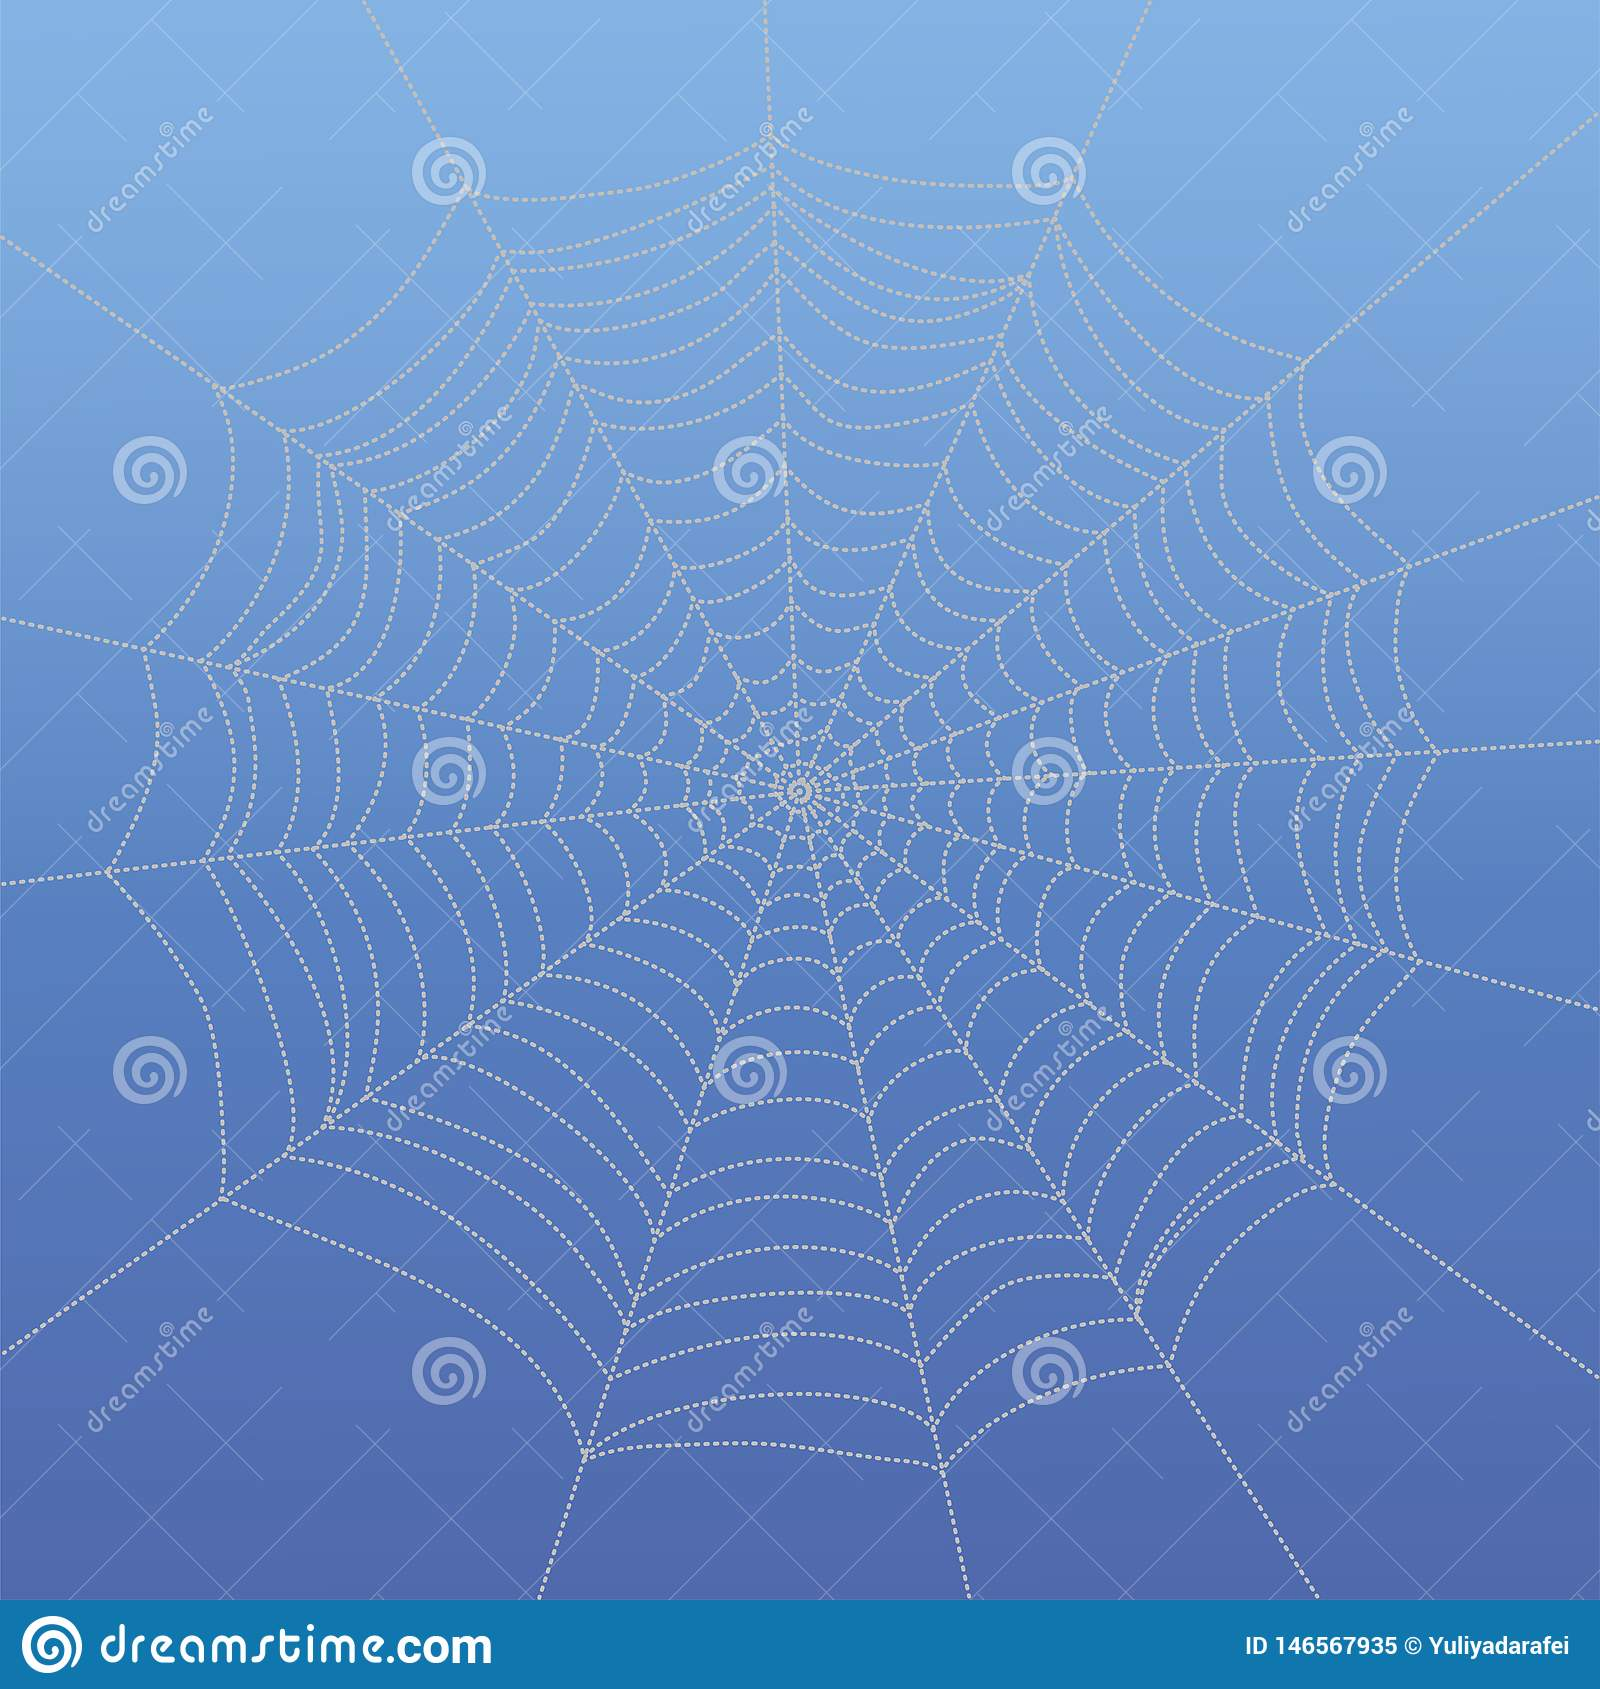 Abstract drawing spiderweb